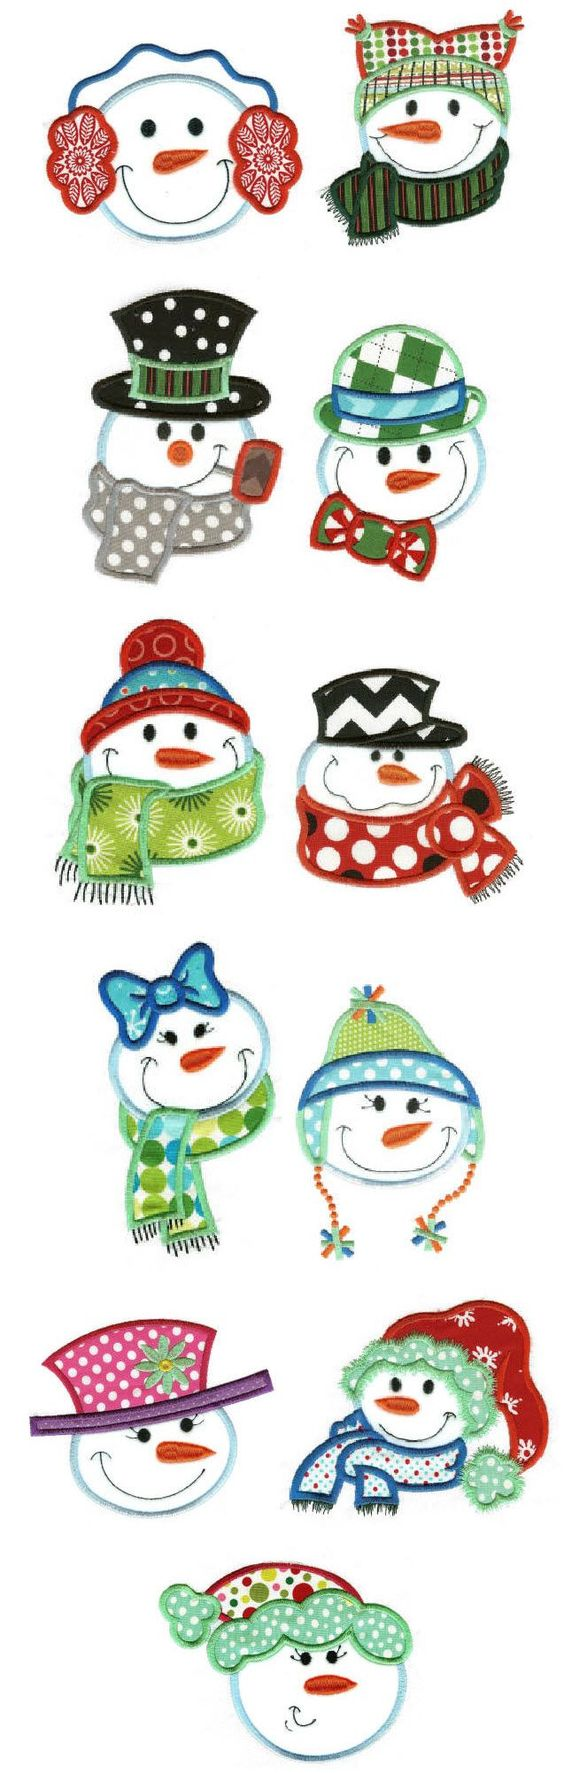 Embroidery applique machine embroidery designs snow buddies applique h ember pinterest - Appliques exterieures ontwerp ...